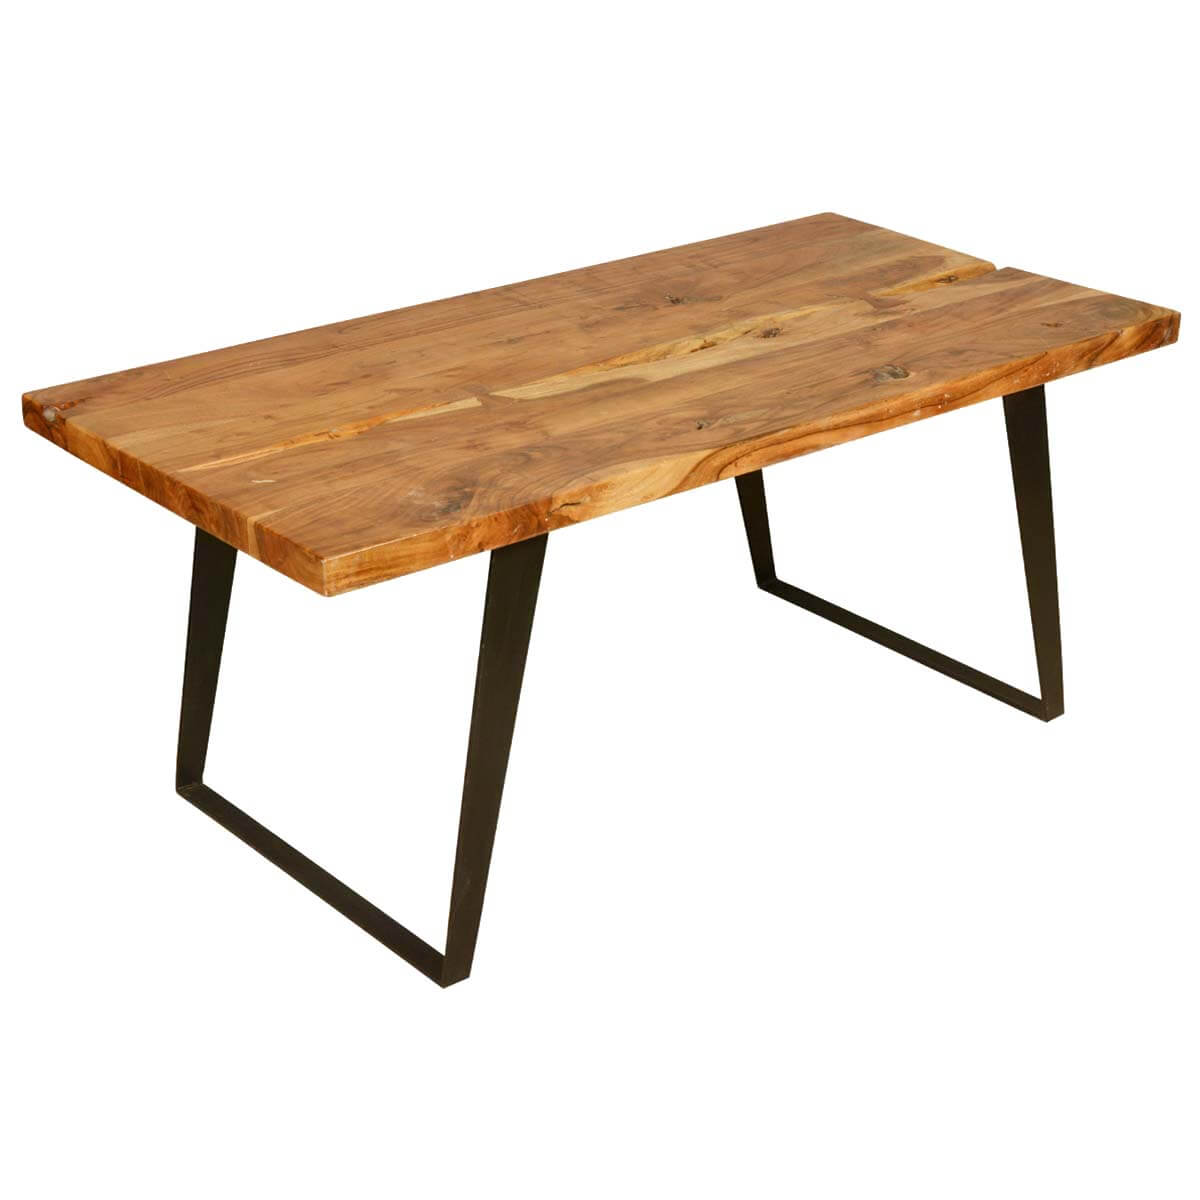 Hankin modern rustic solid wood industrial style dining table for Wood modern dining table